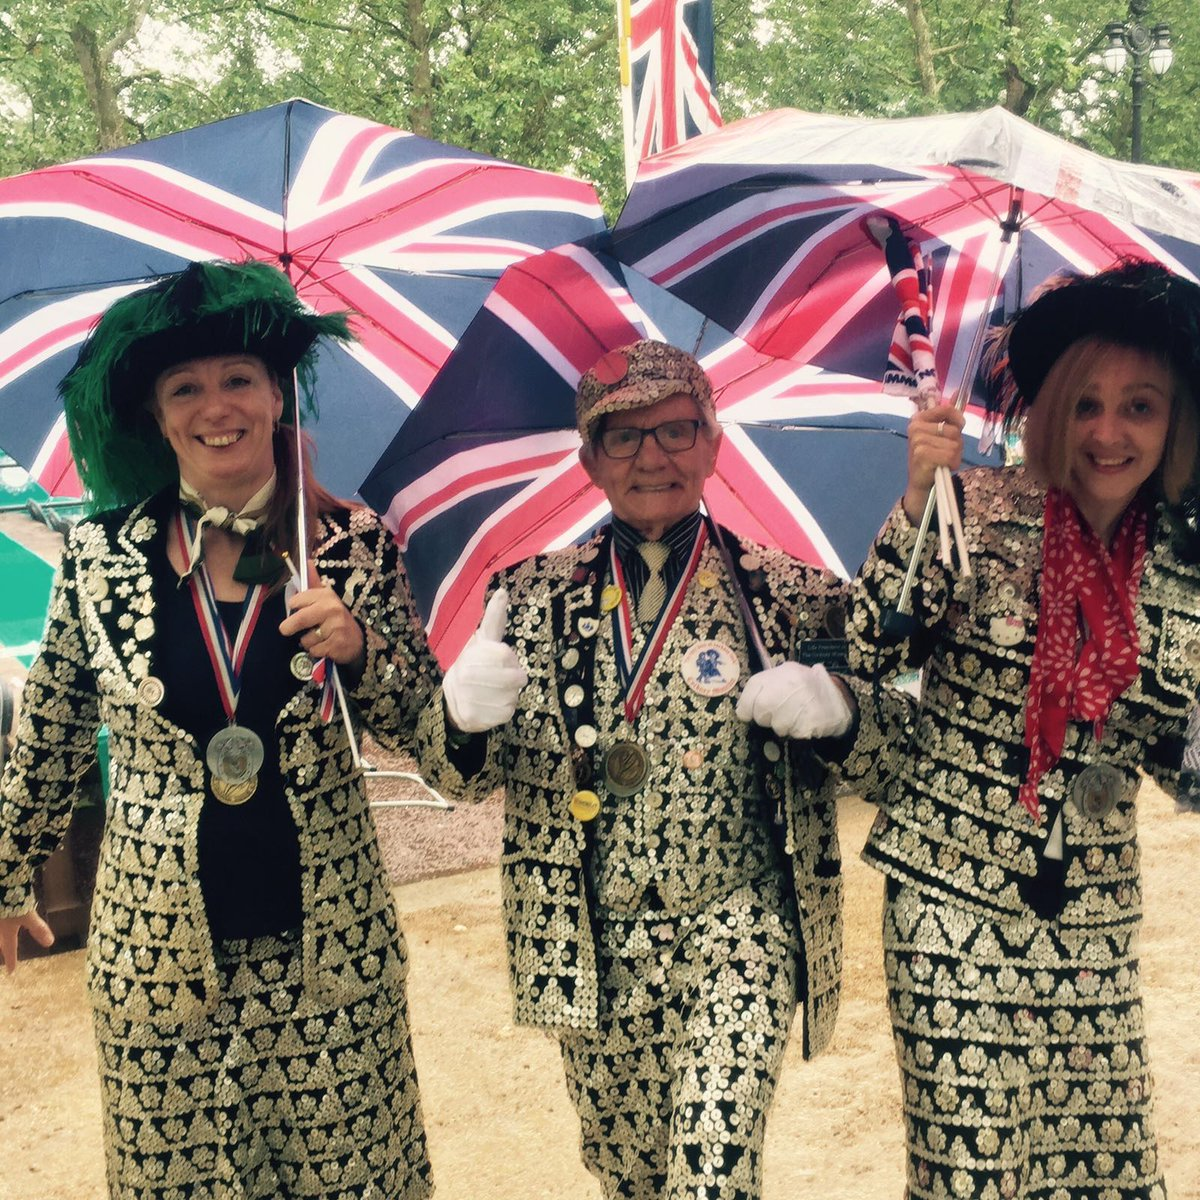 Did you spot the Pearly Kings & Queens in the #ThePatronsLunch parade? https://t.co/OxmeHoTdFM